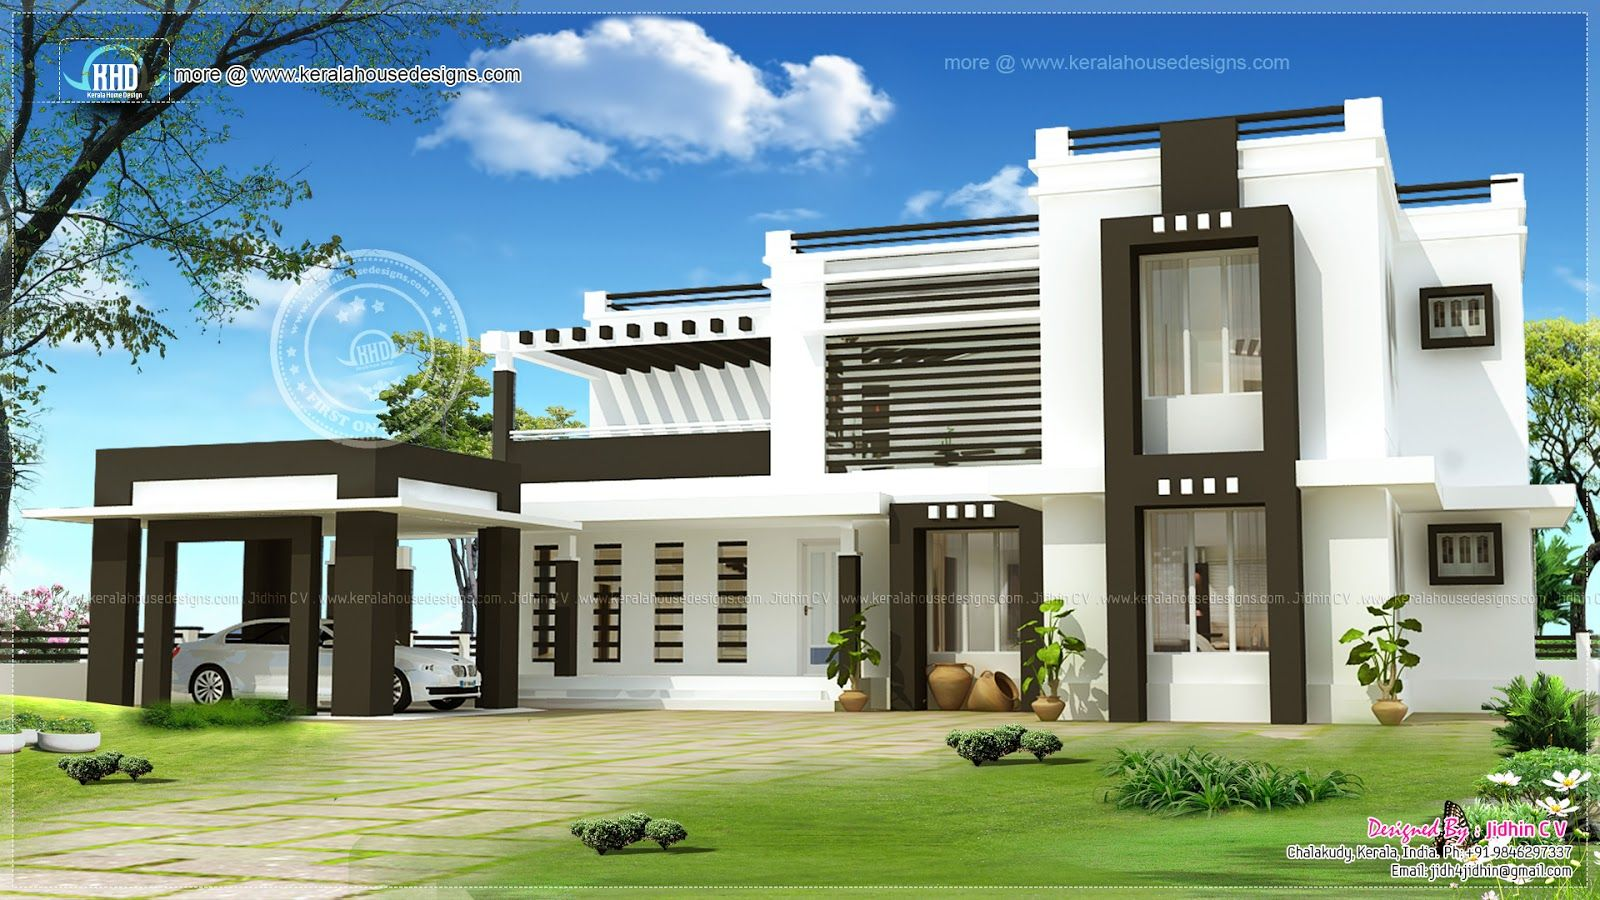 Home Design Exterior exterior home design ideas modern asian exterior house design Exterior Exterior Home Design Design Saveemail Harts Contemporary House